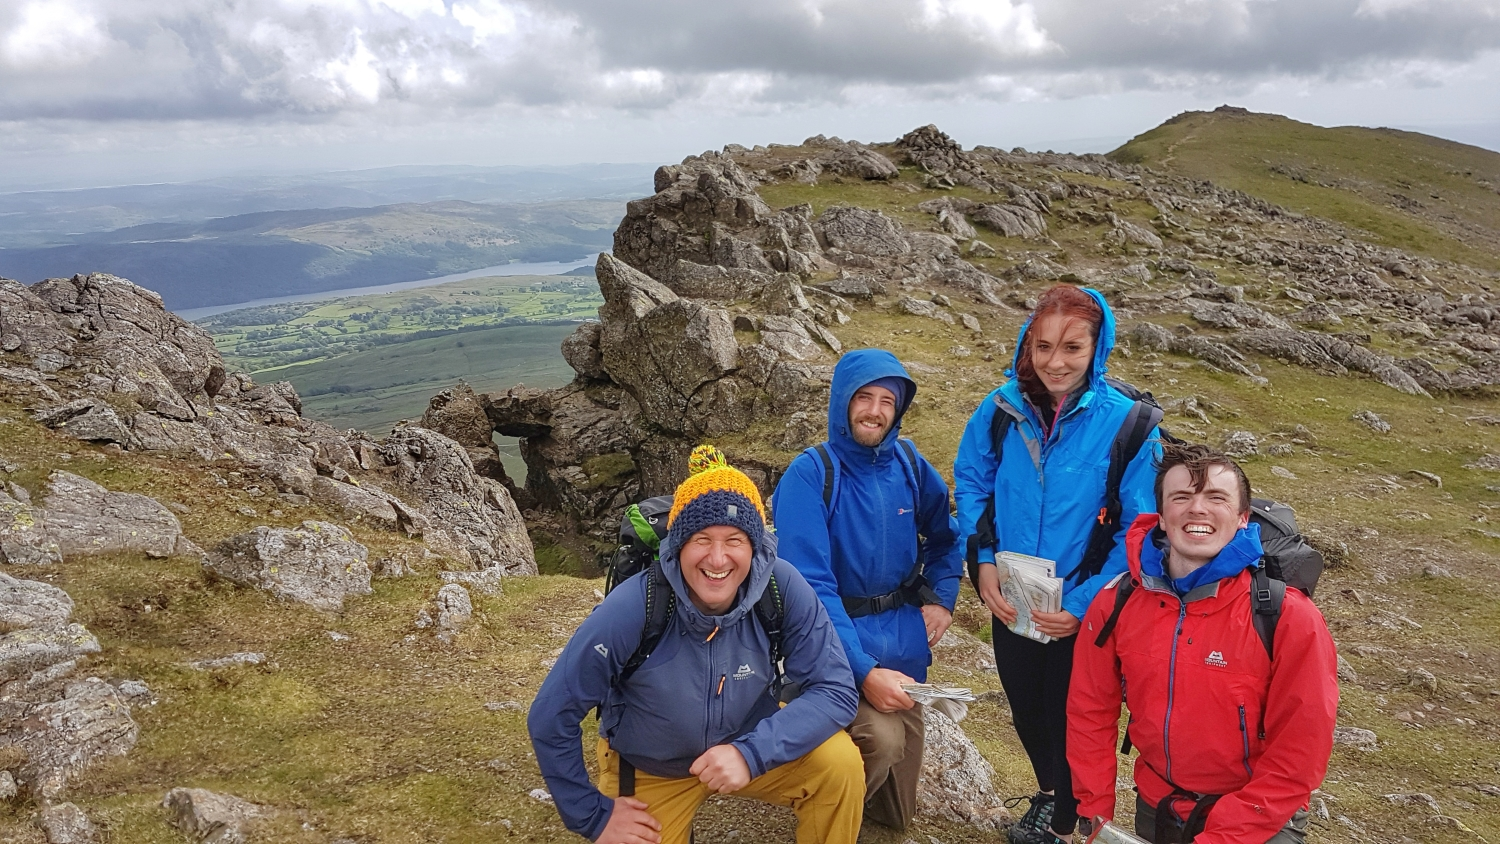 Monday 3rd June: the Coniston fells